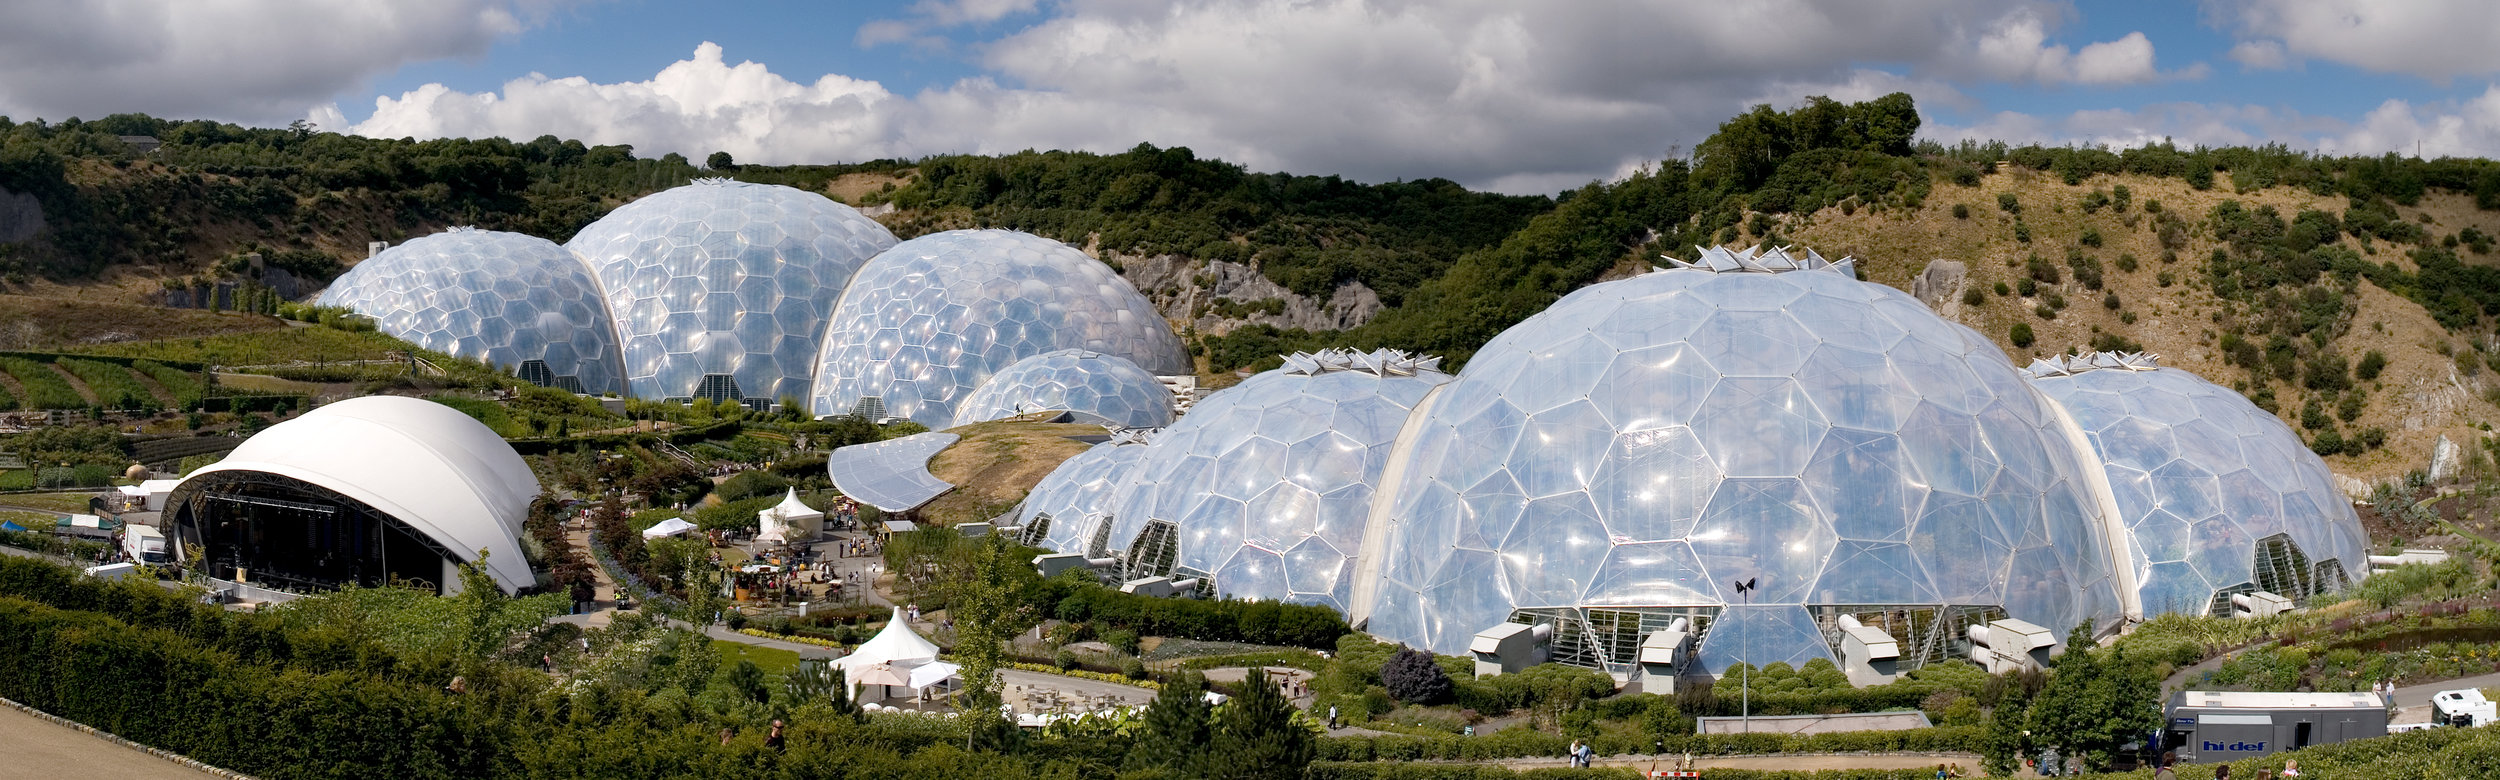 Eden_Project_geodesic_domes_panorama.jpg